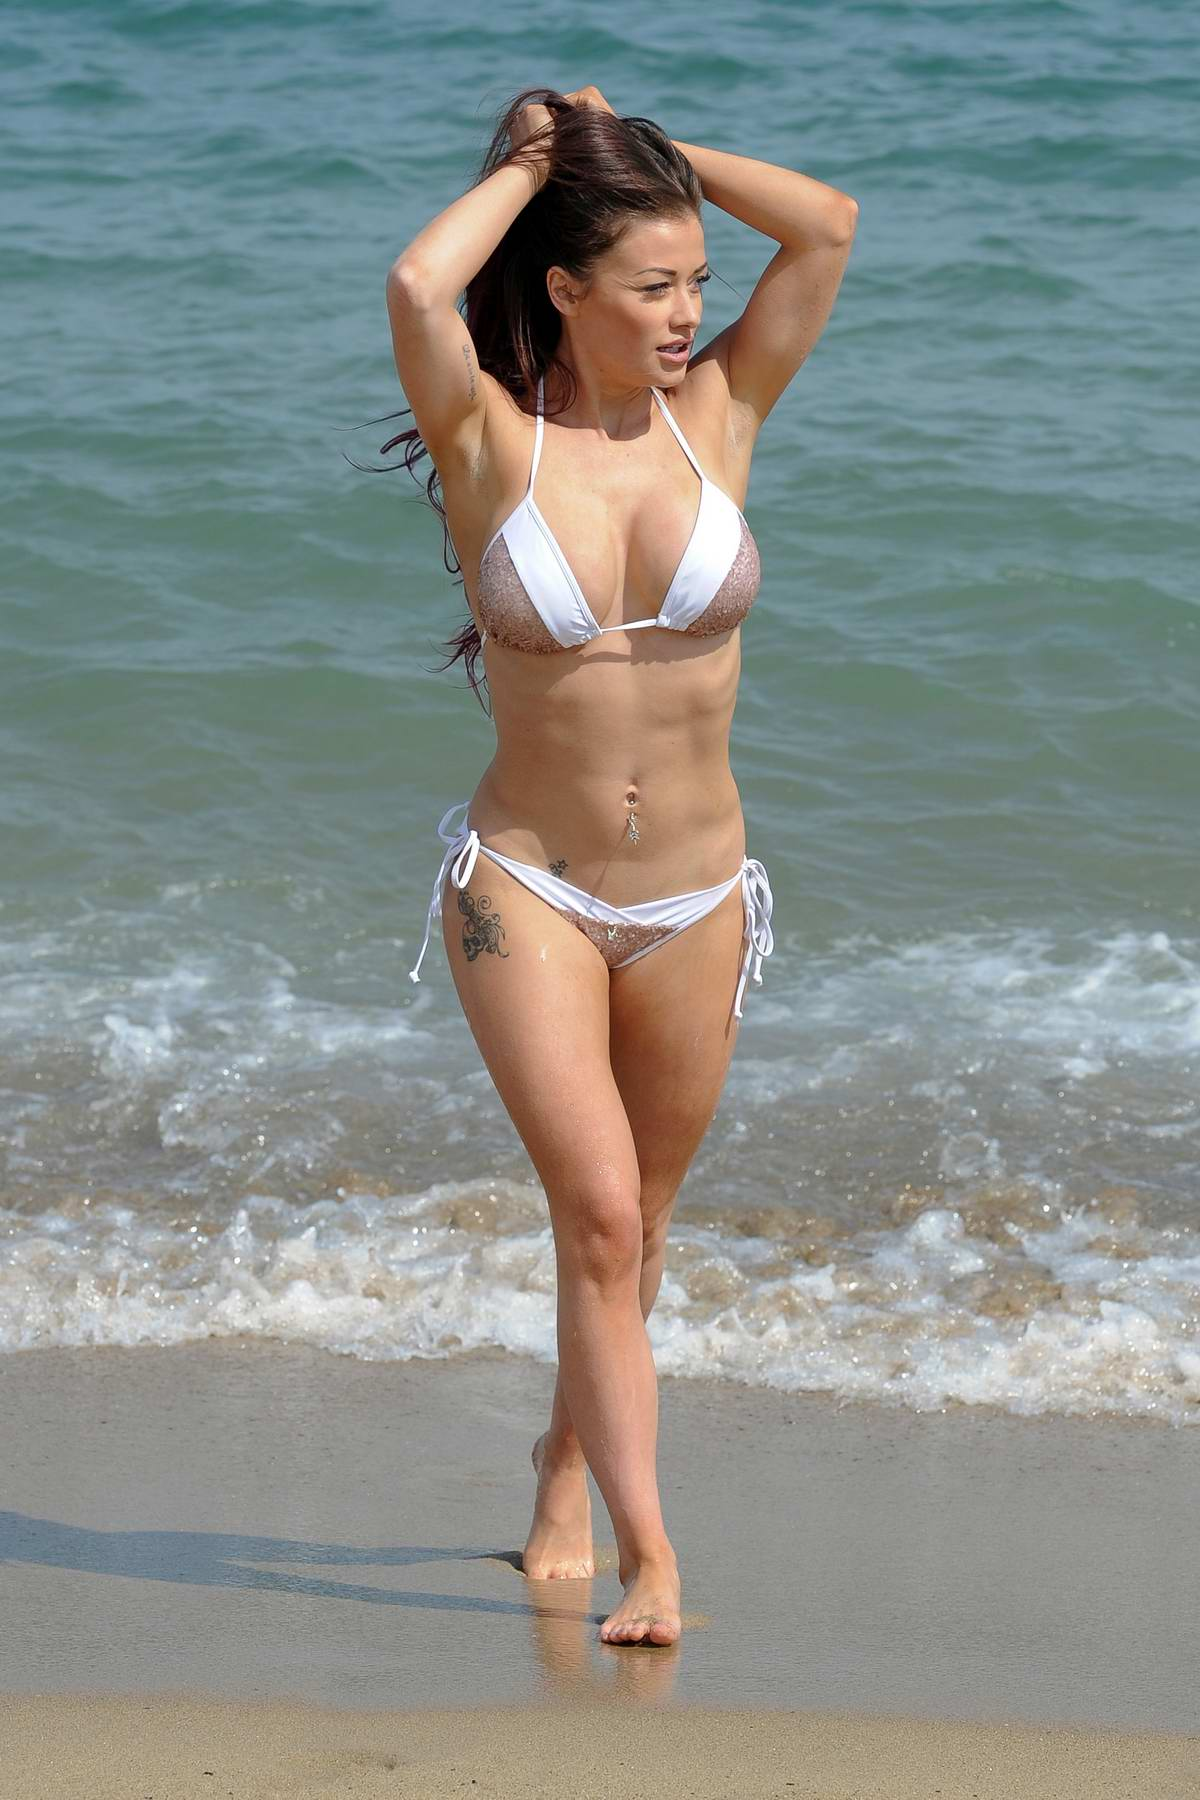 Jess Impiazzi wears a bikini as she enjoys some leisure time at the beach in Spain